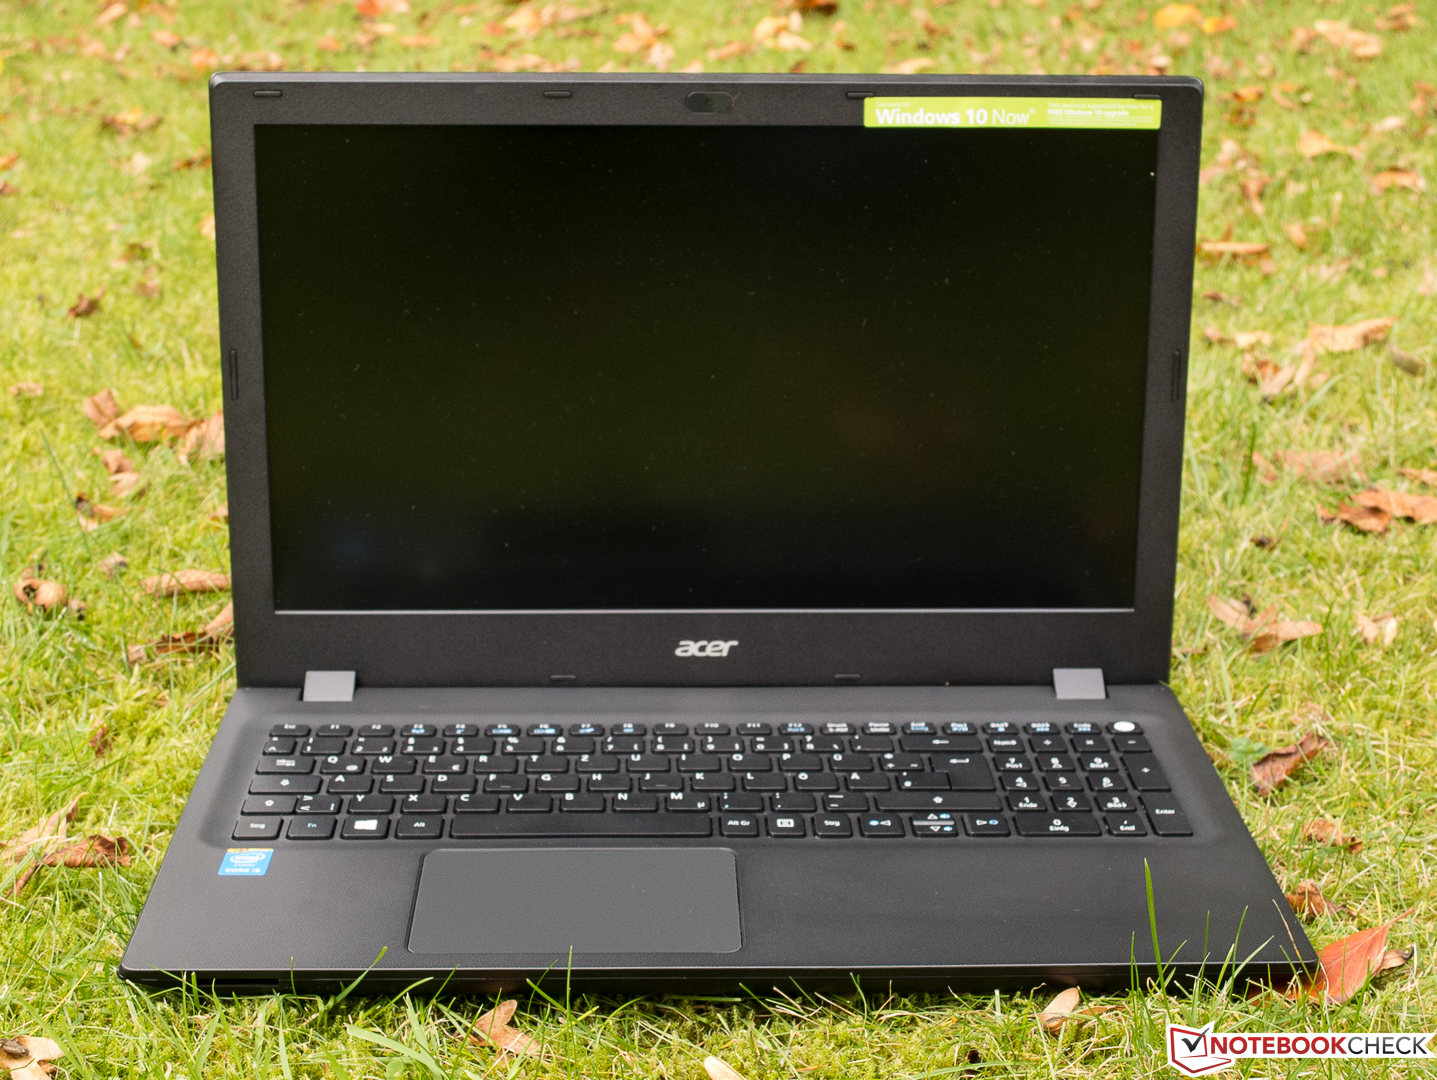 ACER TRAVELMATE P257-M WINDOWS 7 64BIT DRIVER